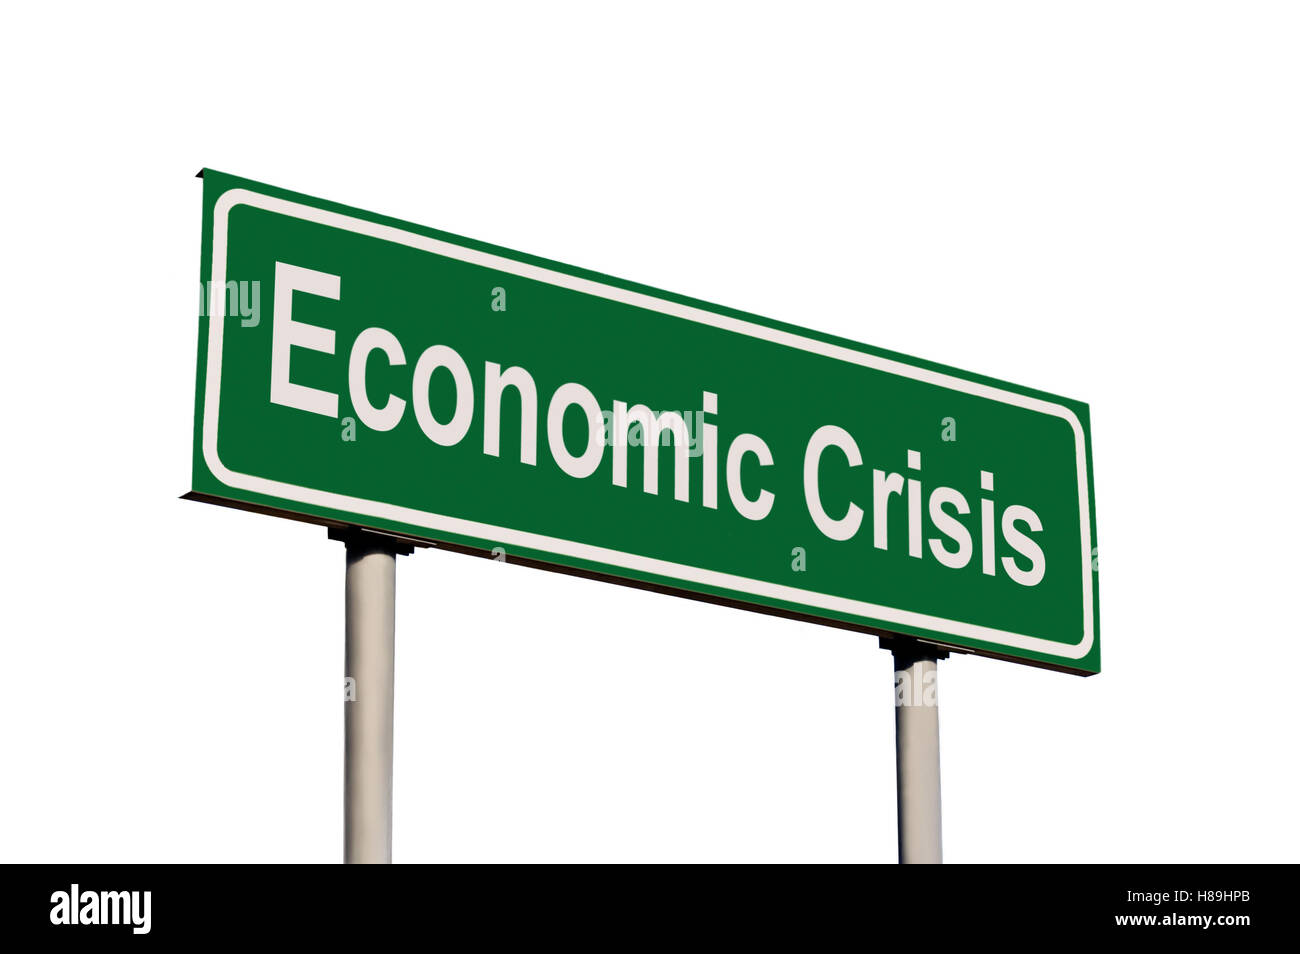 Economic Crisis Green Road Sign, Isolated White Frame - Stock Image